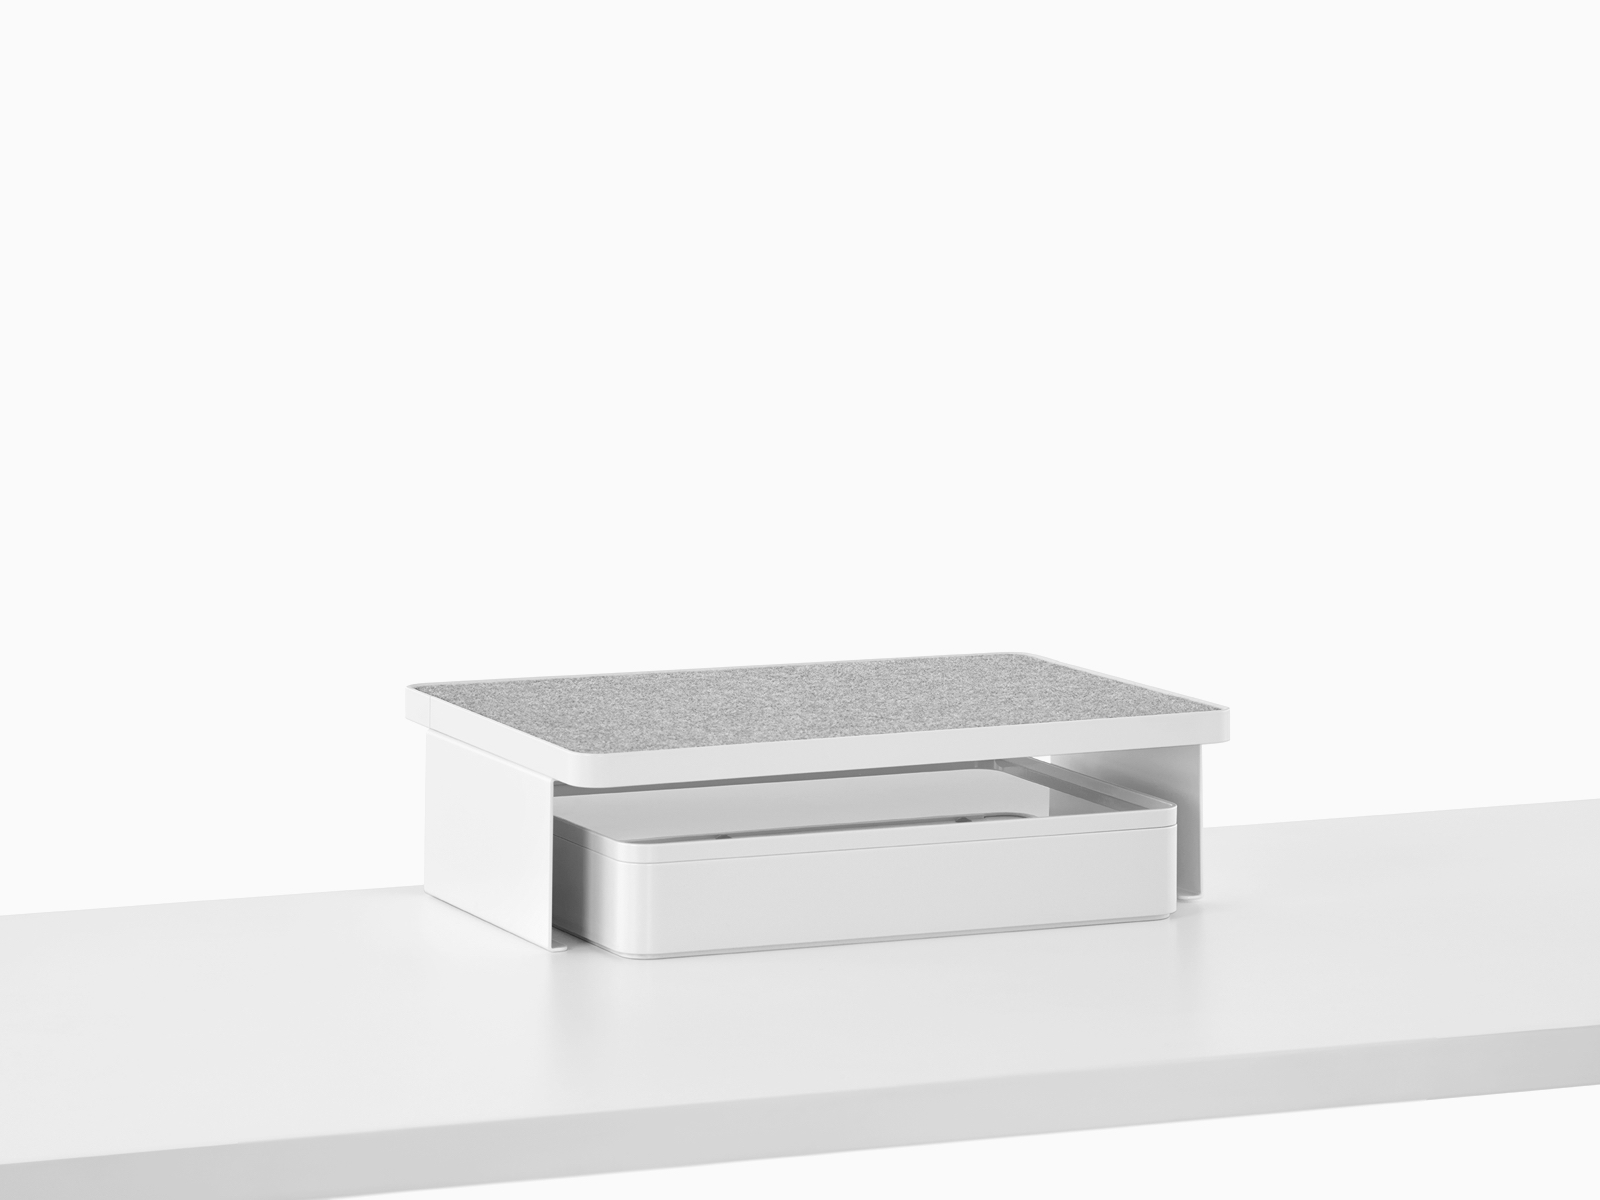 A Ubi Freestanding Shelf with a non-skid surface and a storage box below.